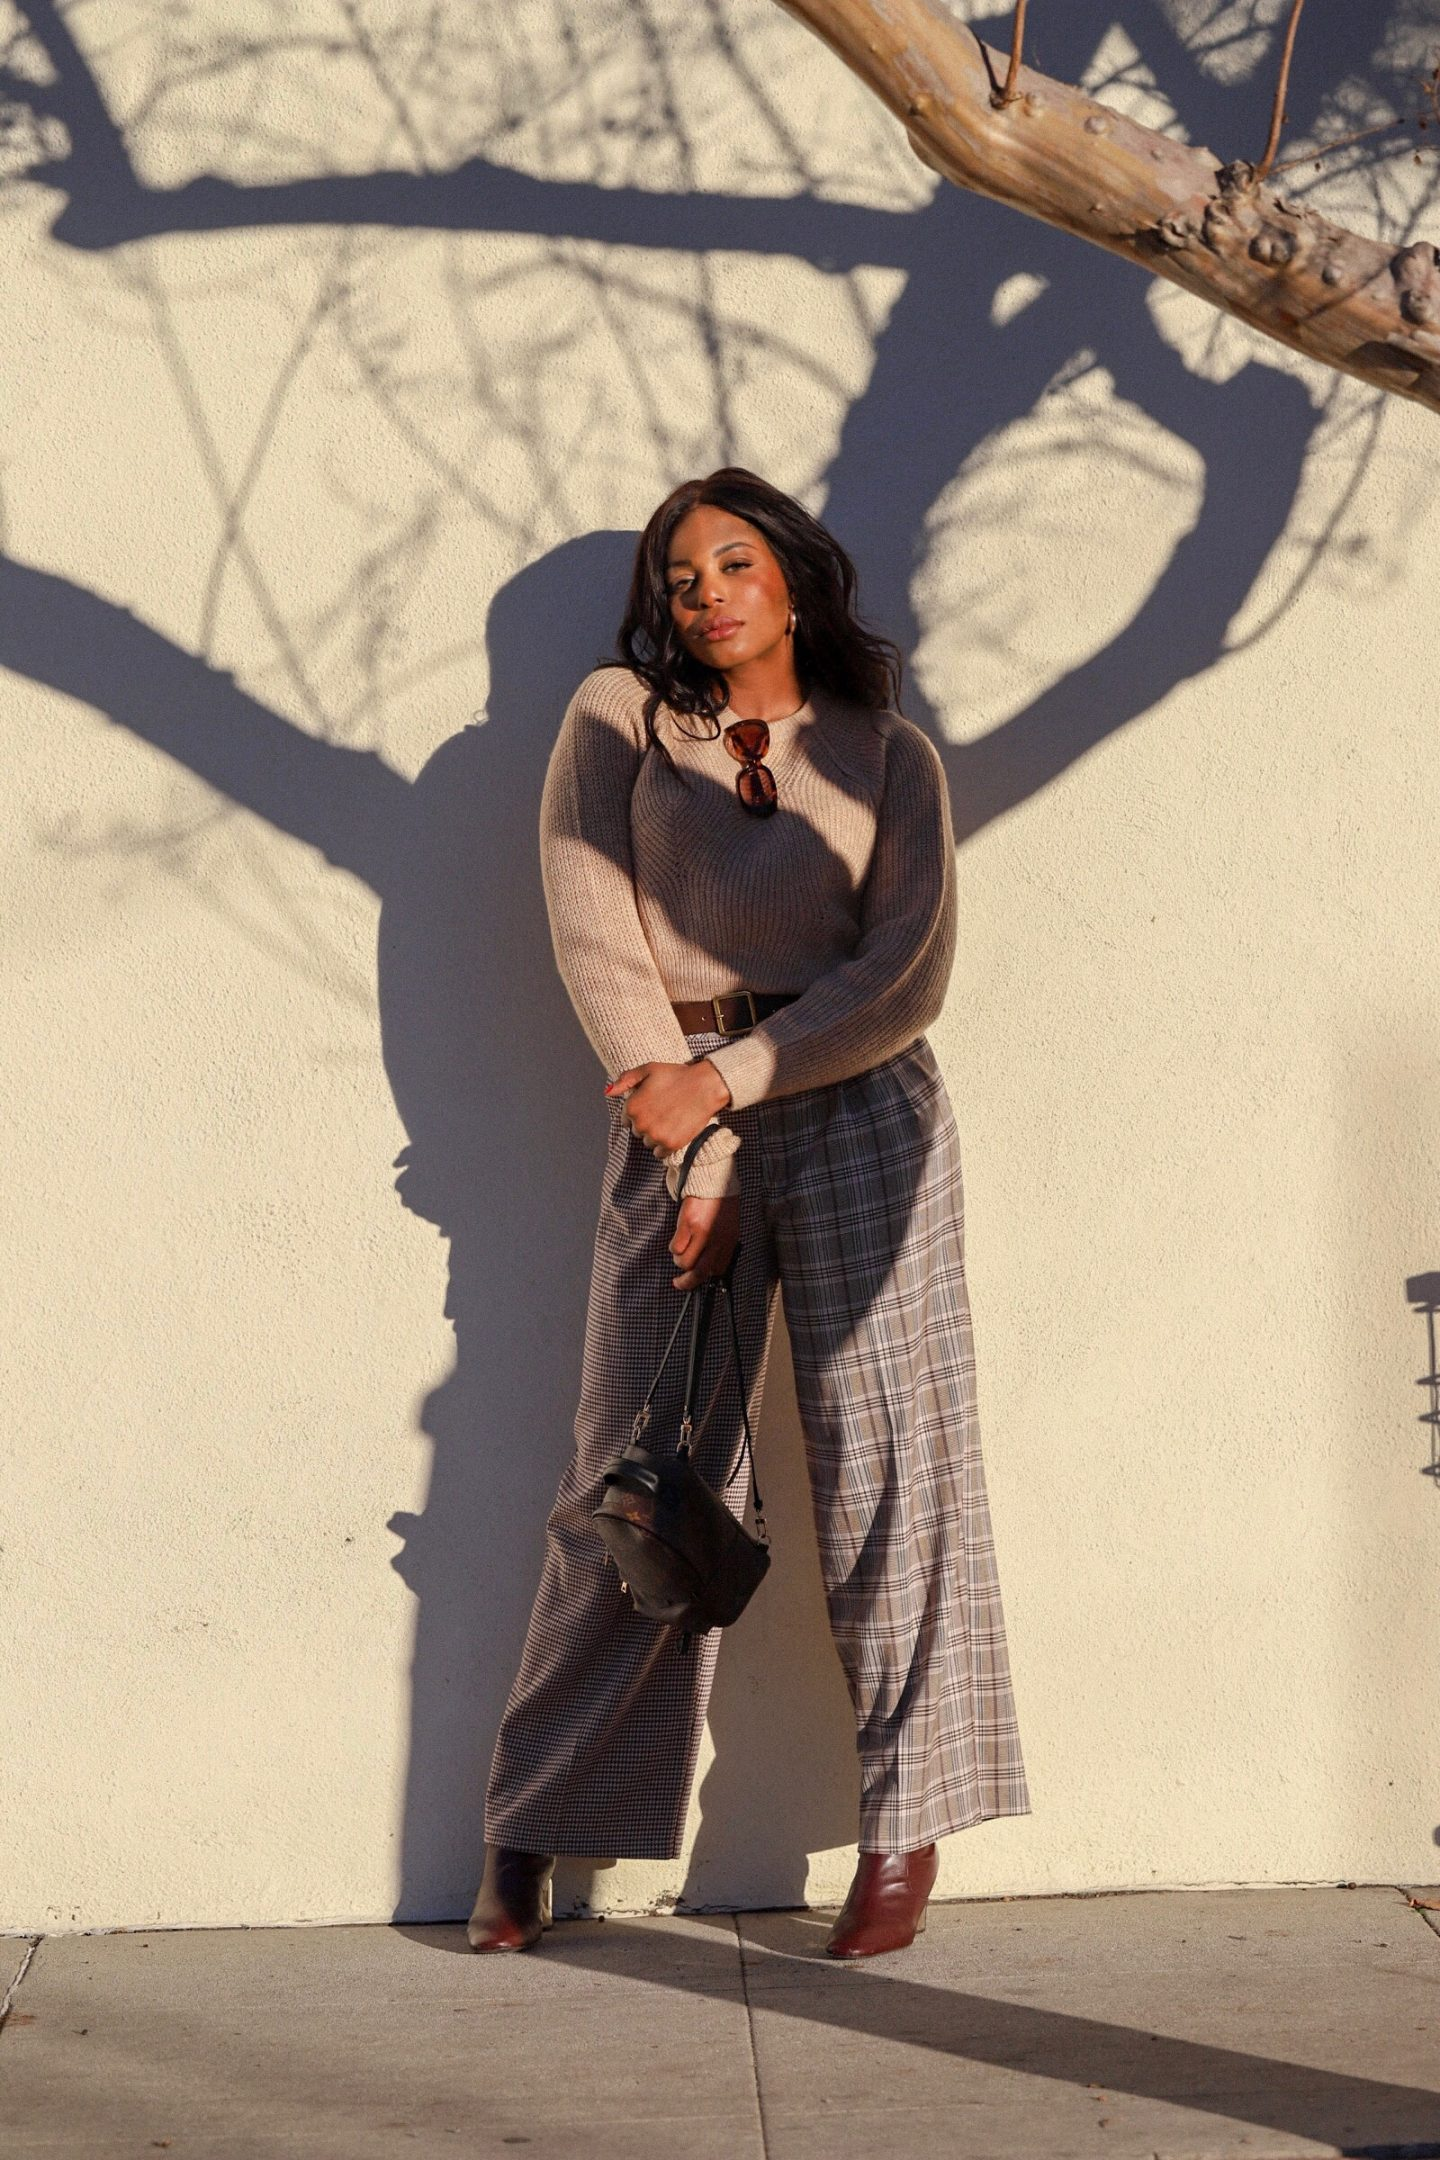 Kaye Bassey posing in front of a wall to showcase a unique outfit for the fall.